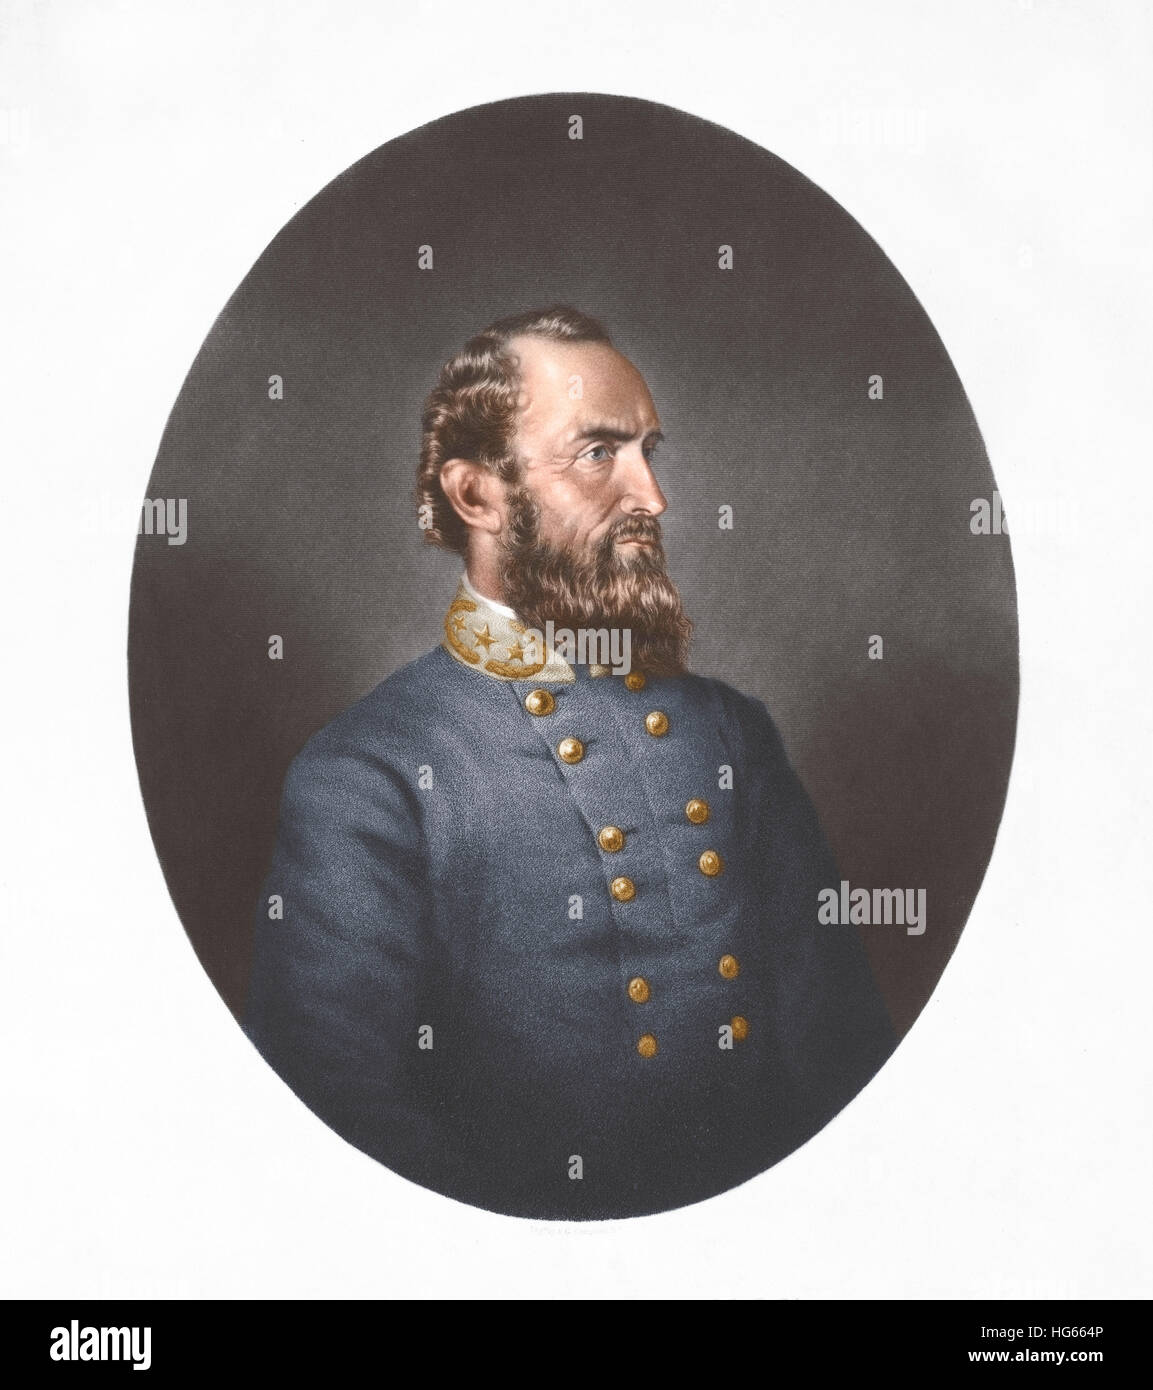 Portrait of Thomas Stonewall Jackson wearing a blue tunic. - Stock Image